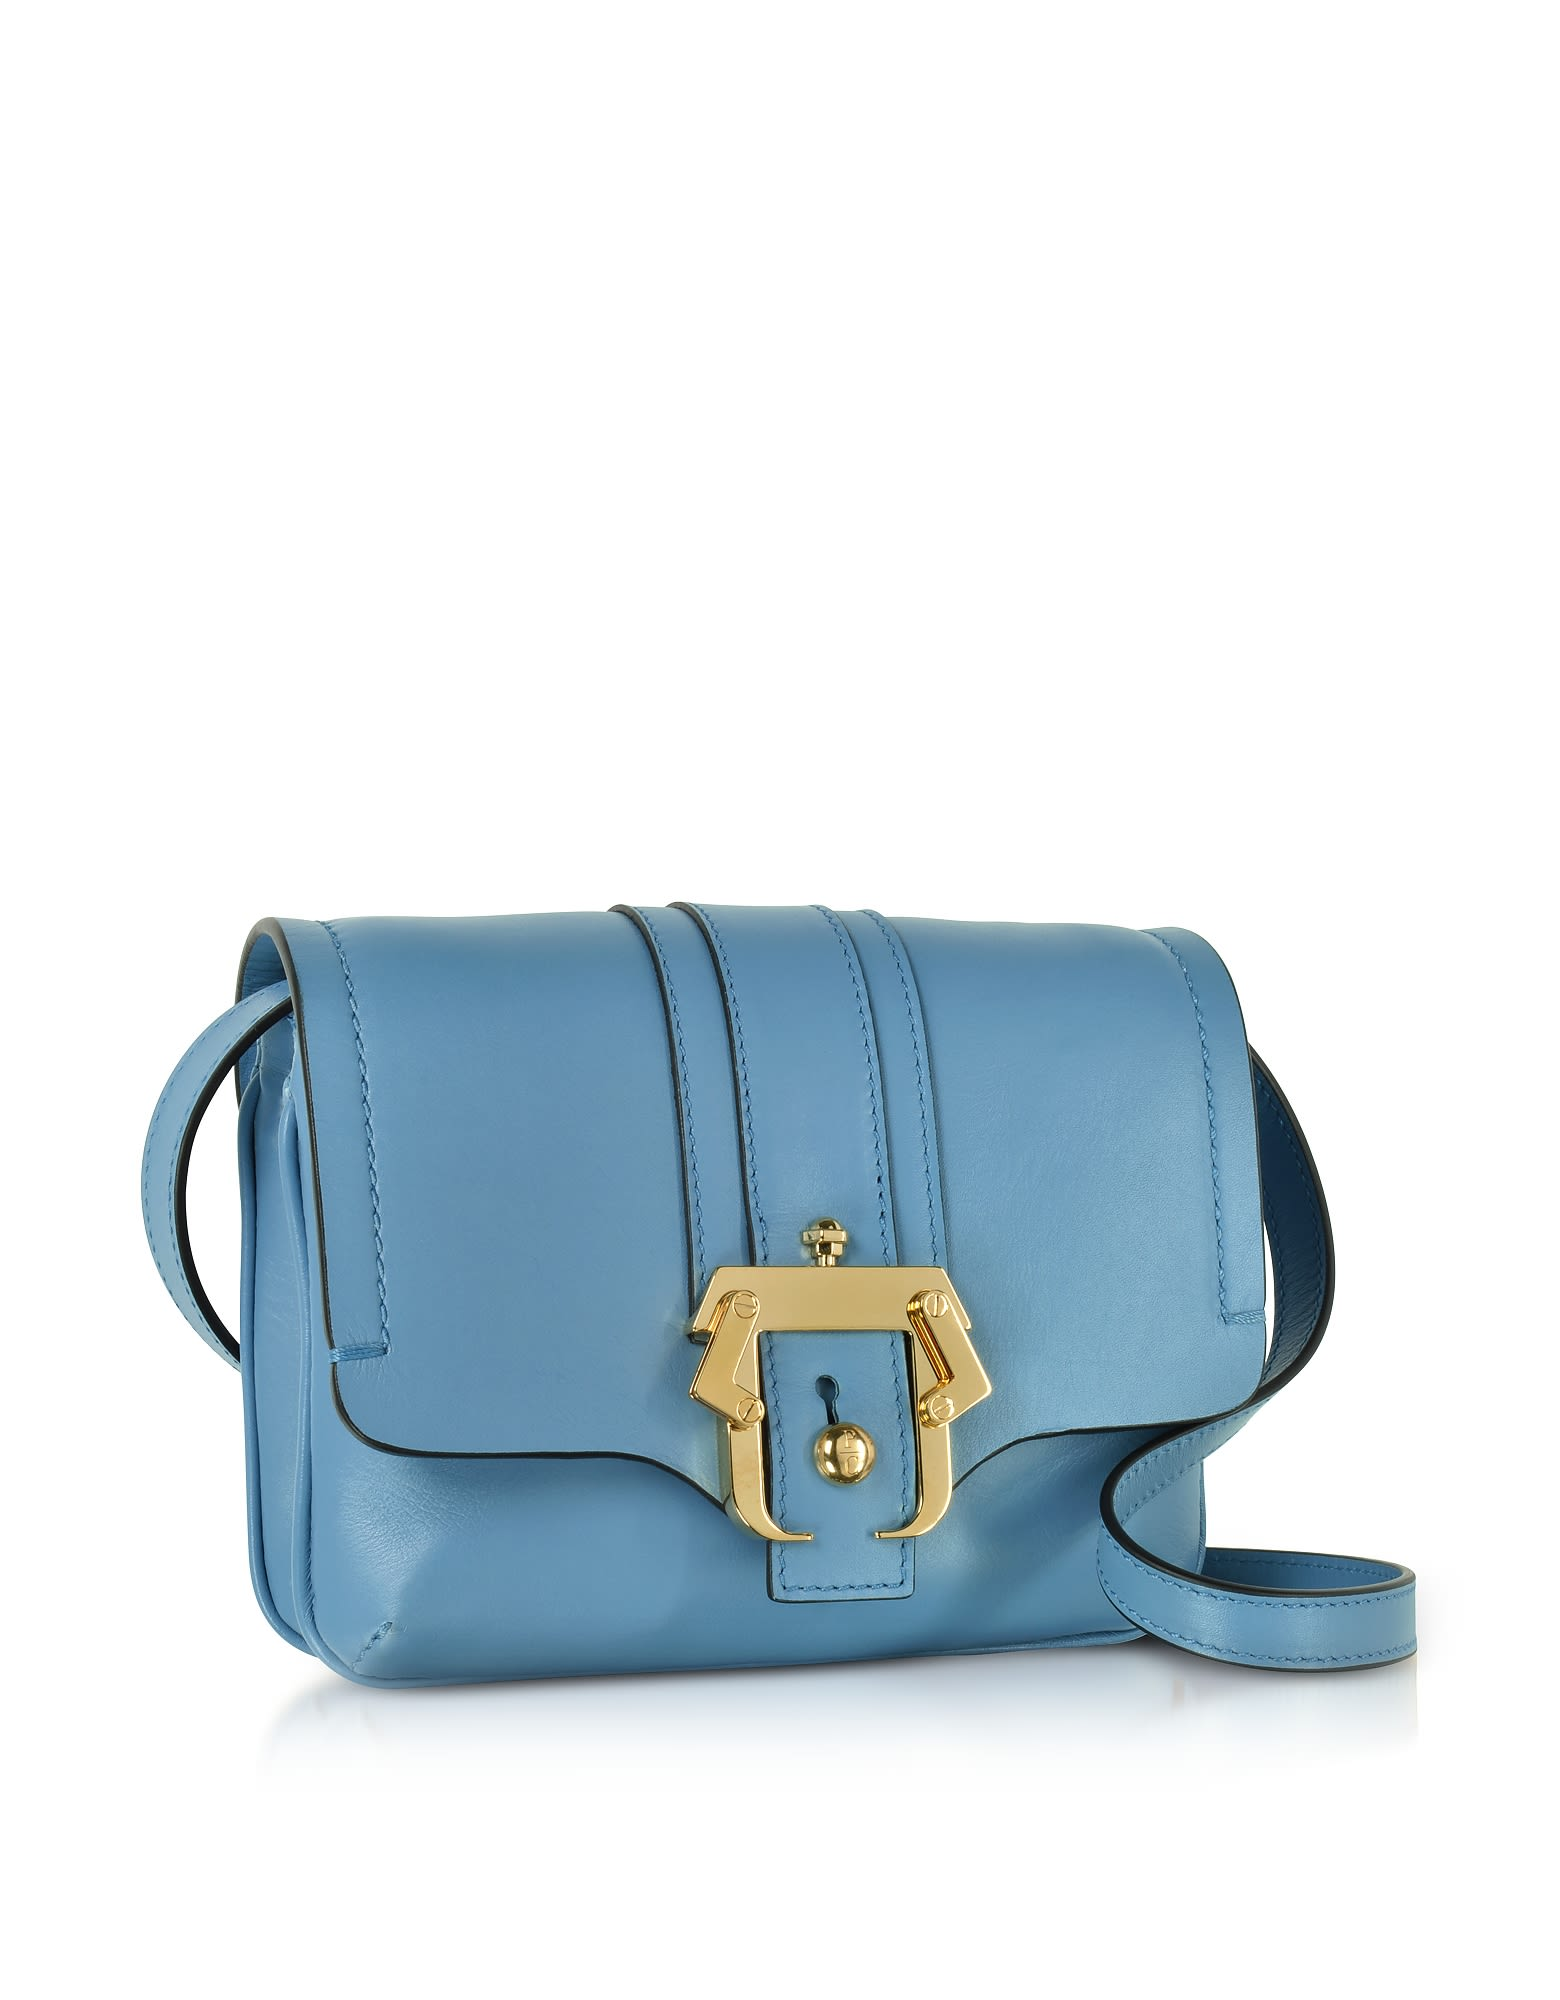 Outlet Get To Buy Big Discount Cheap Price Gigi - Blue Paula Cademartori nVSoJBVQOU